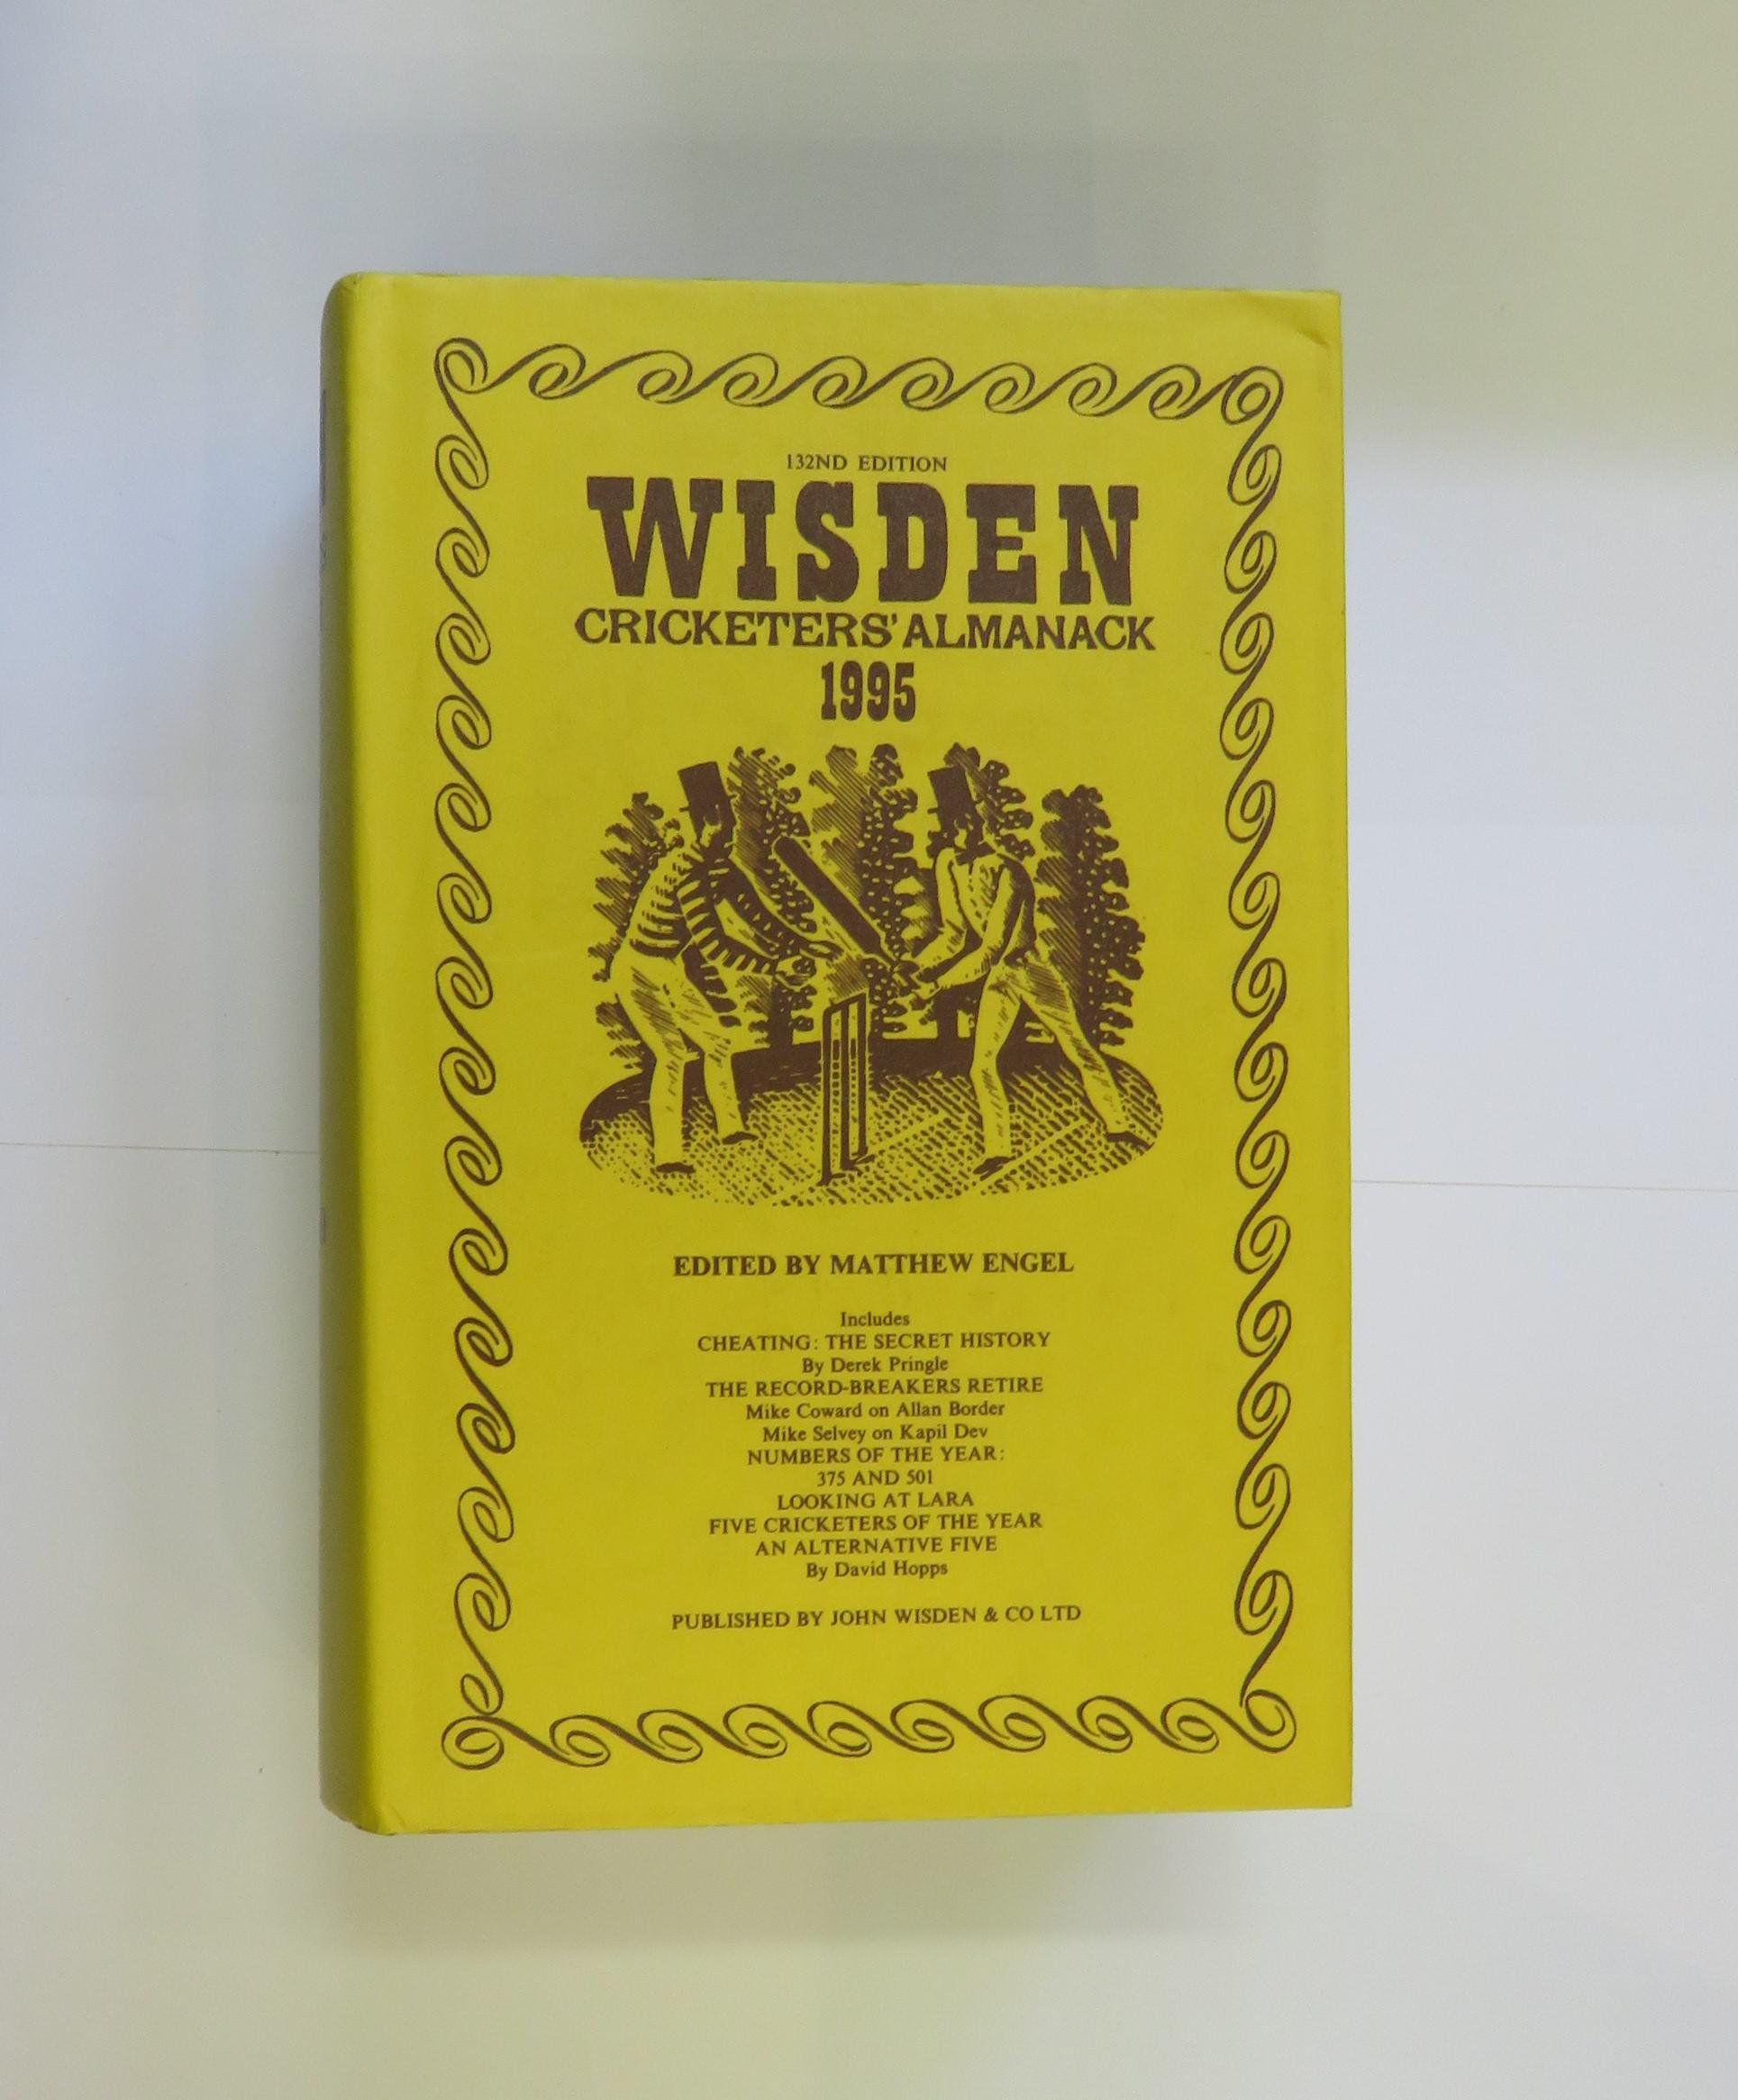 Wisden Cricketers' Almanack 1995